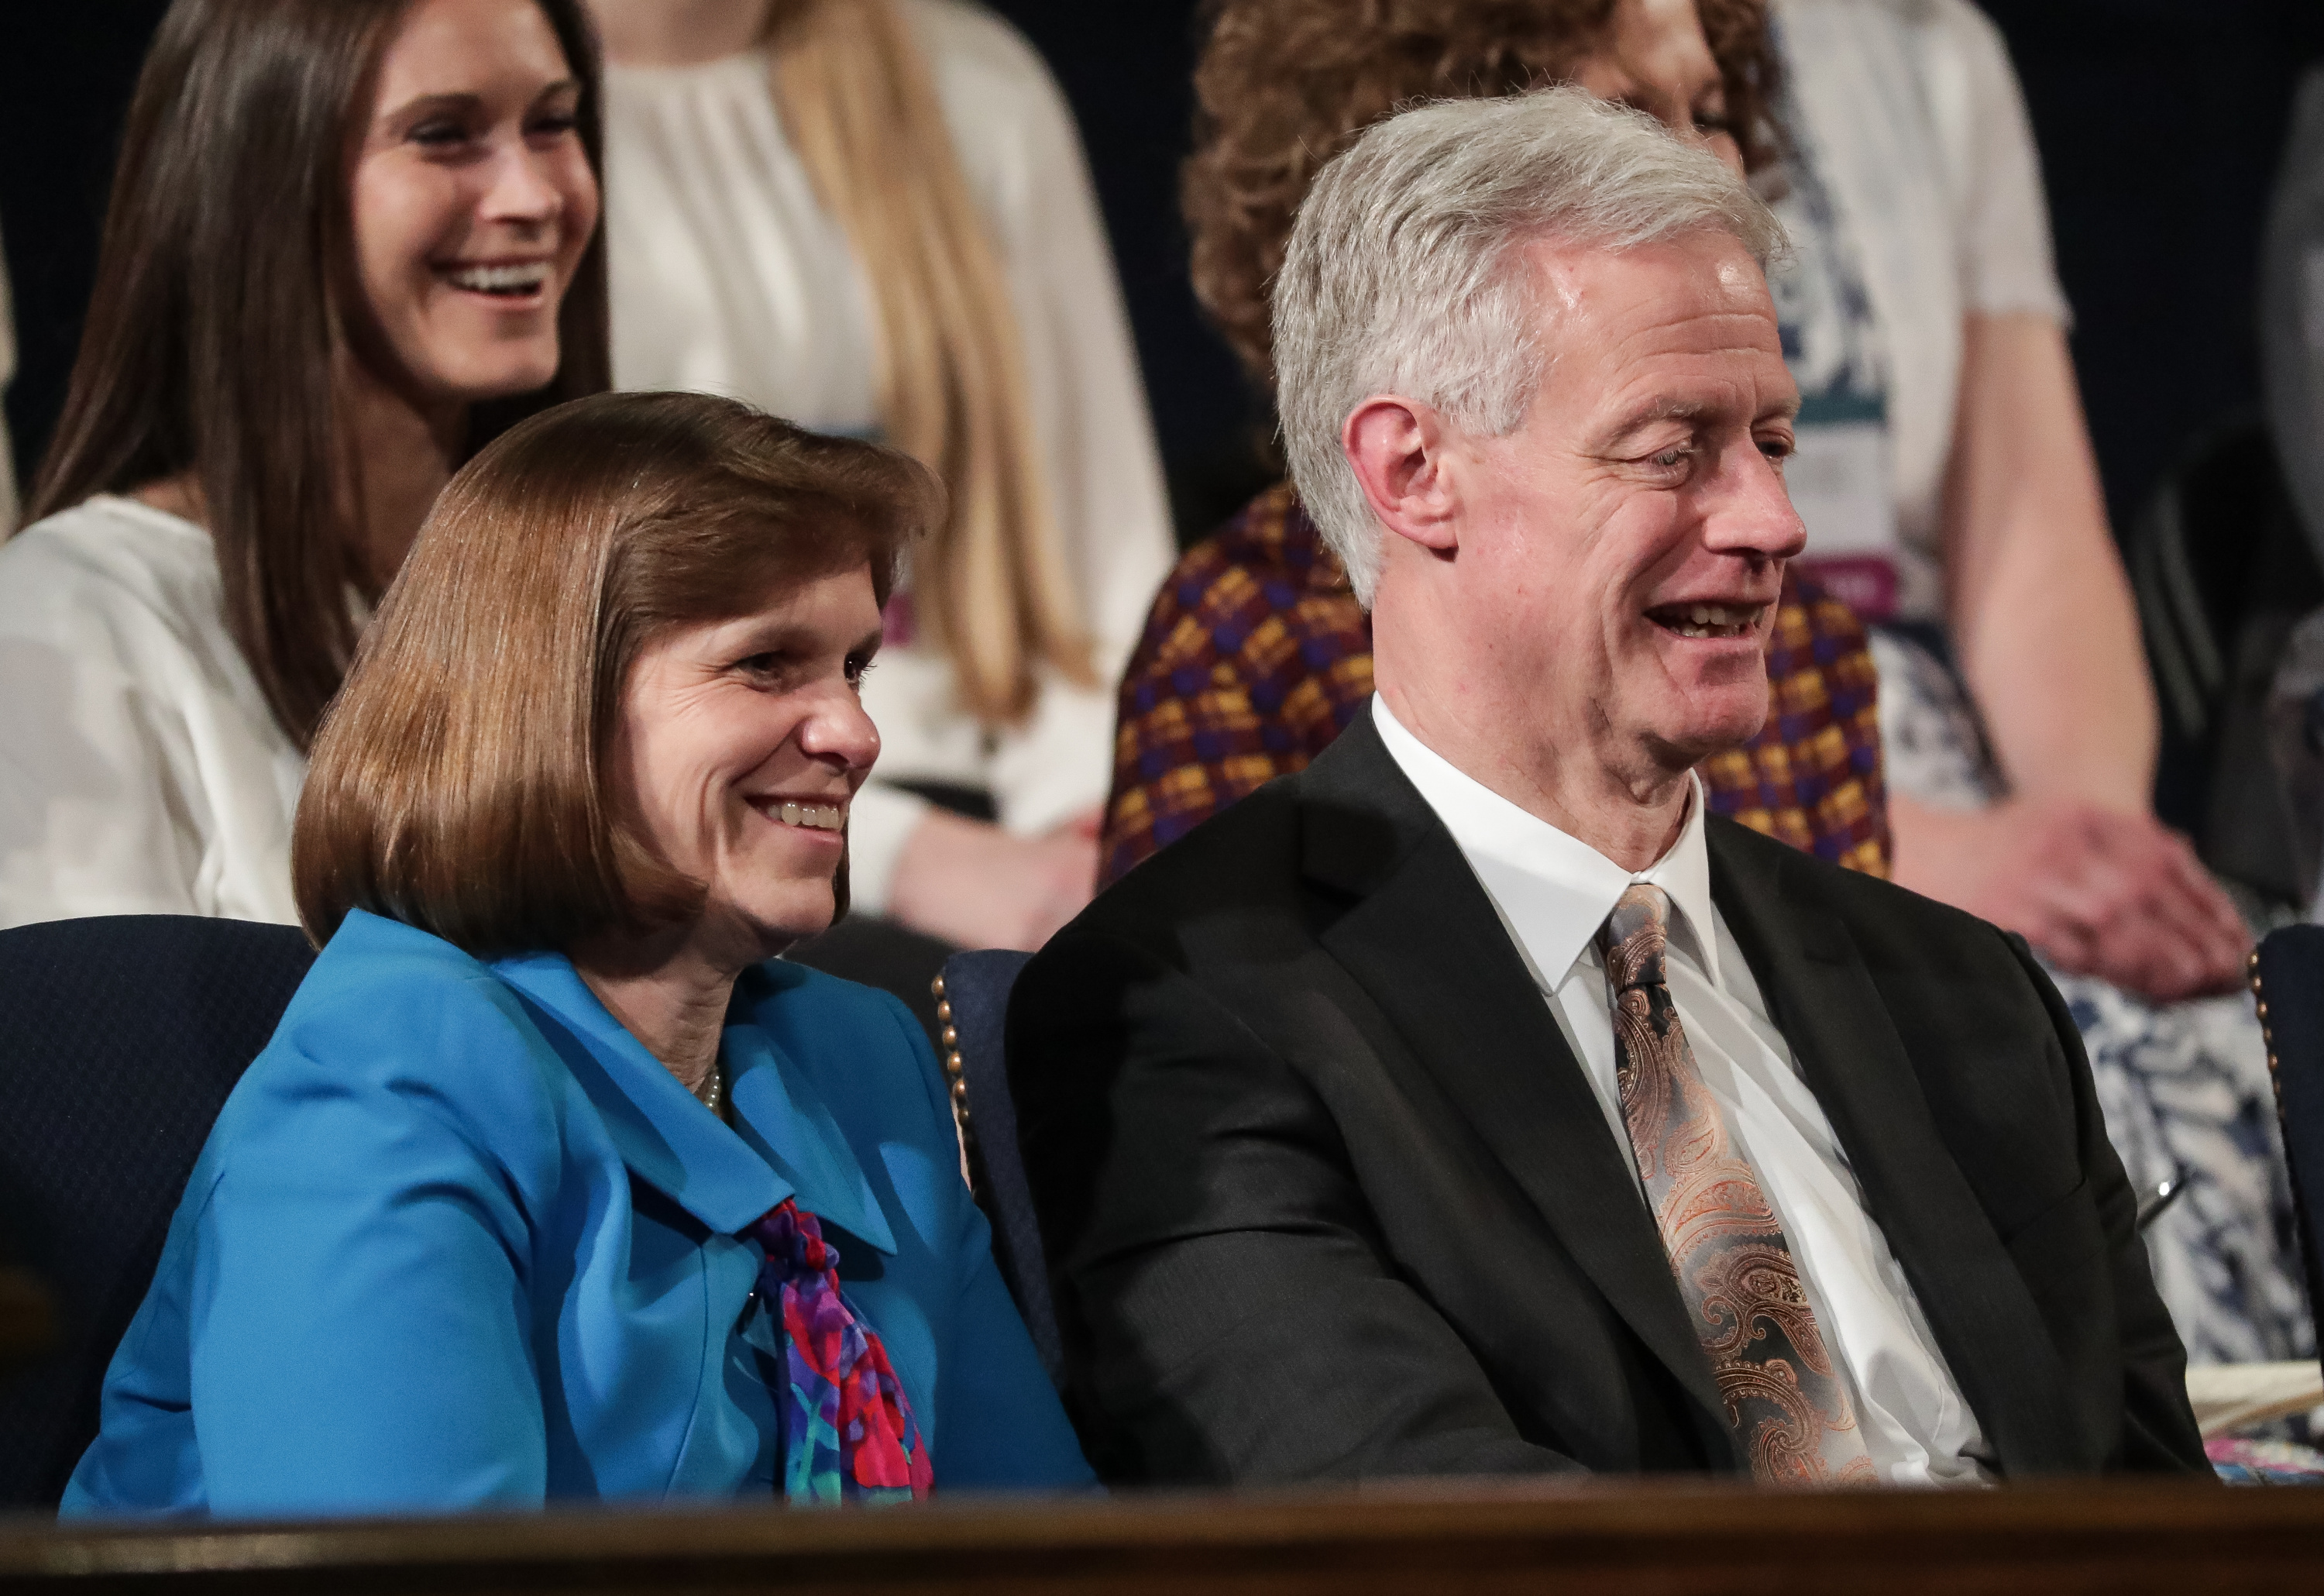 BYU President Kevin J Worthen and his wife, Peggy, listen as Elder Gerrit W. Gong, of the Quorum of the Twelve Apostles of the LDS Church, and his wife, Sister Susan Gong, speak at the BYU Women's Conference at the Marriott Center in Provo on Friday, May 4, 2018.